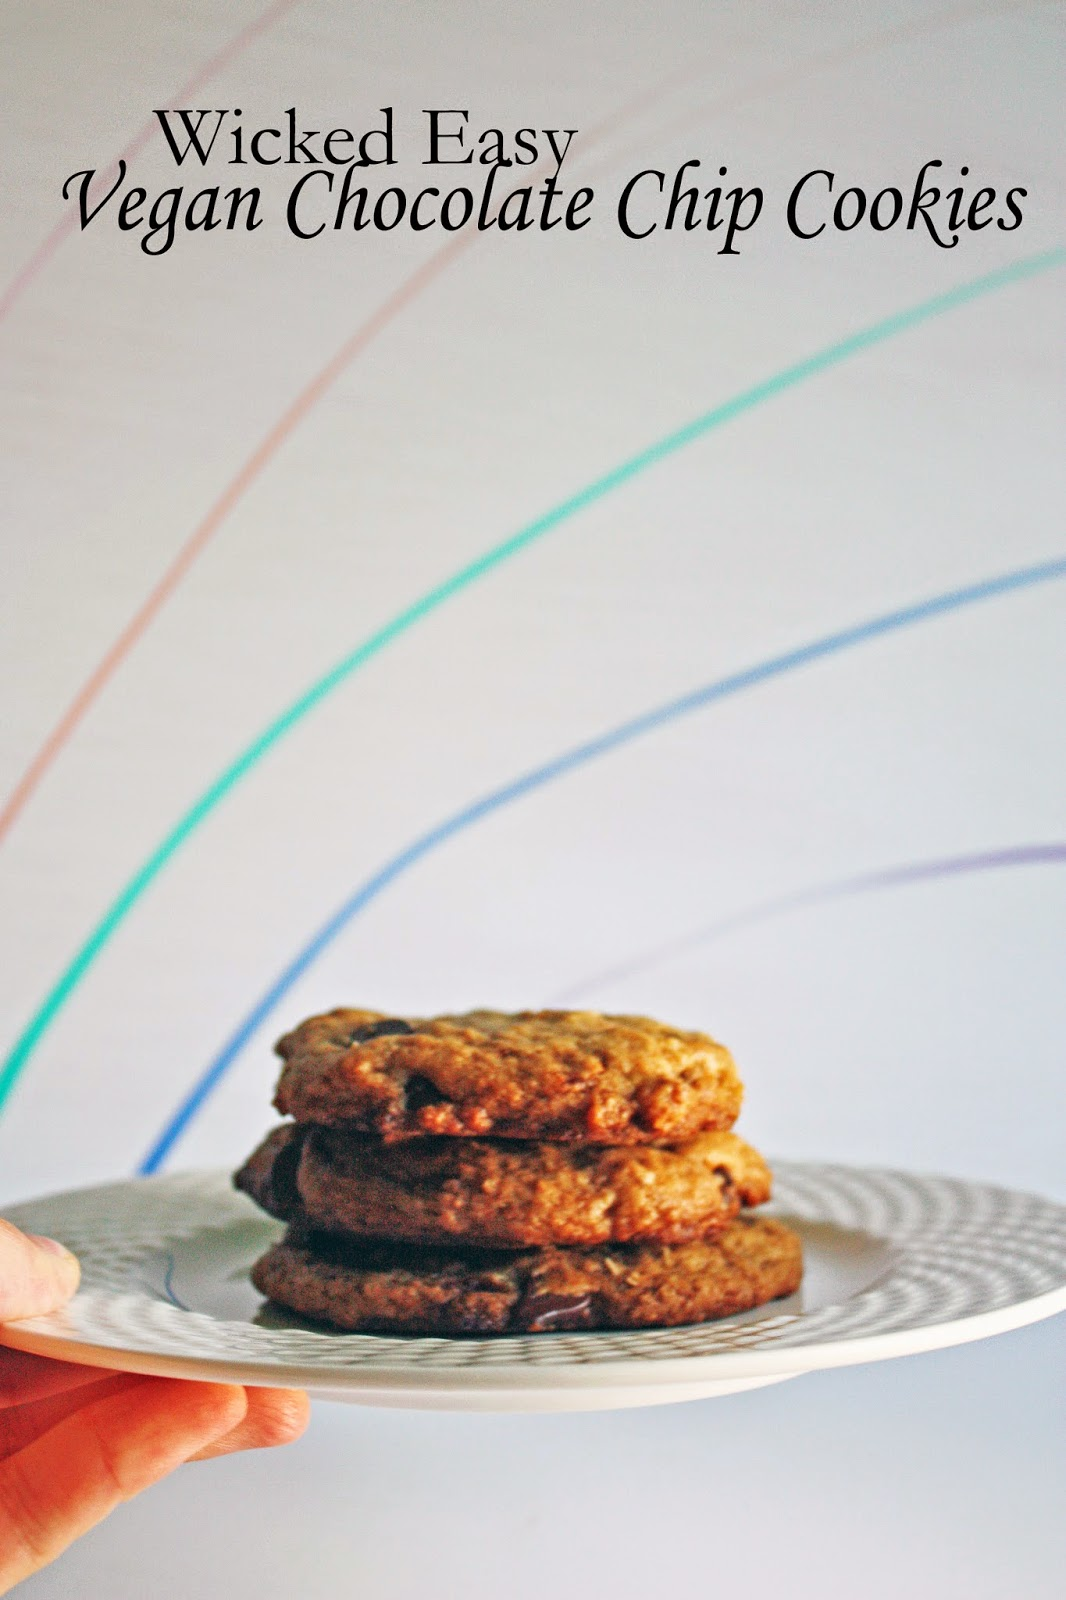 wicked easy classic vegan chocolate chip cookies